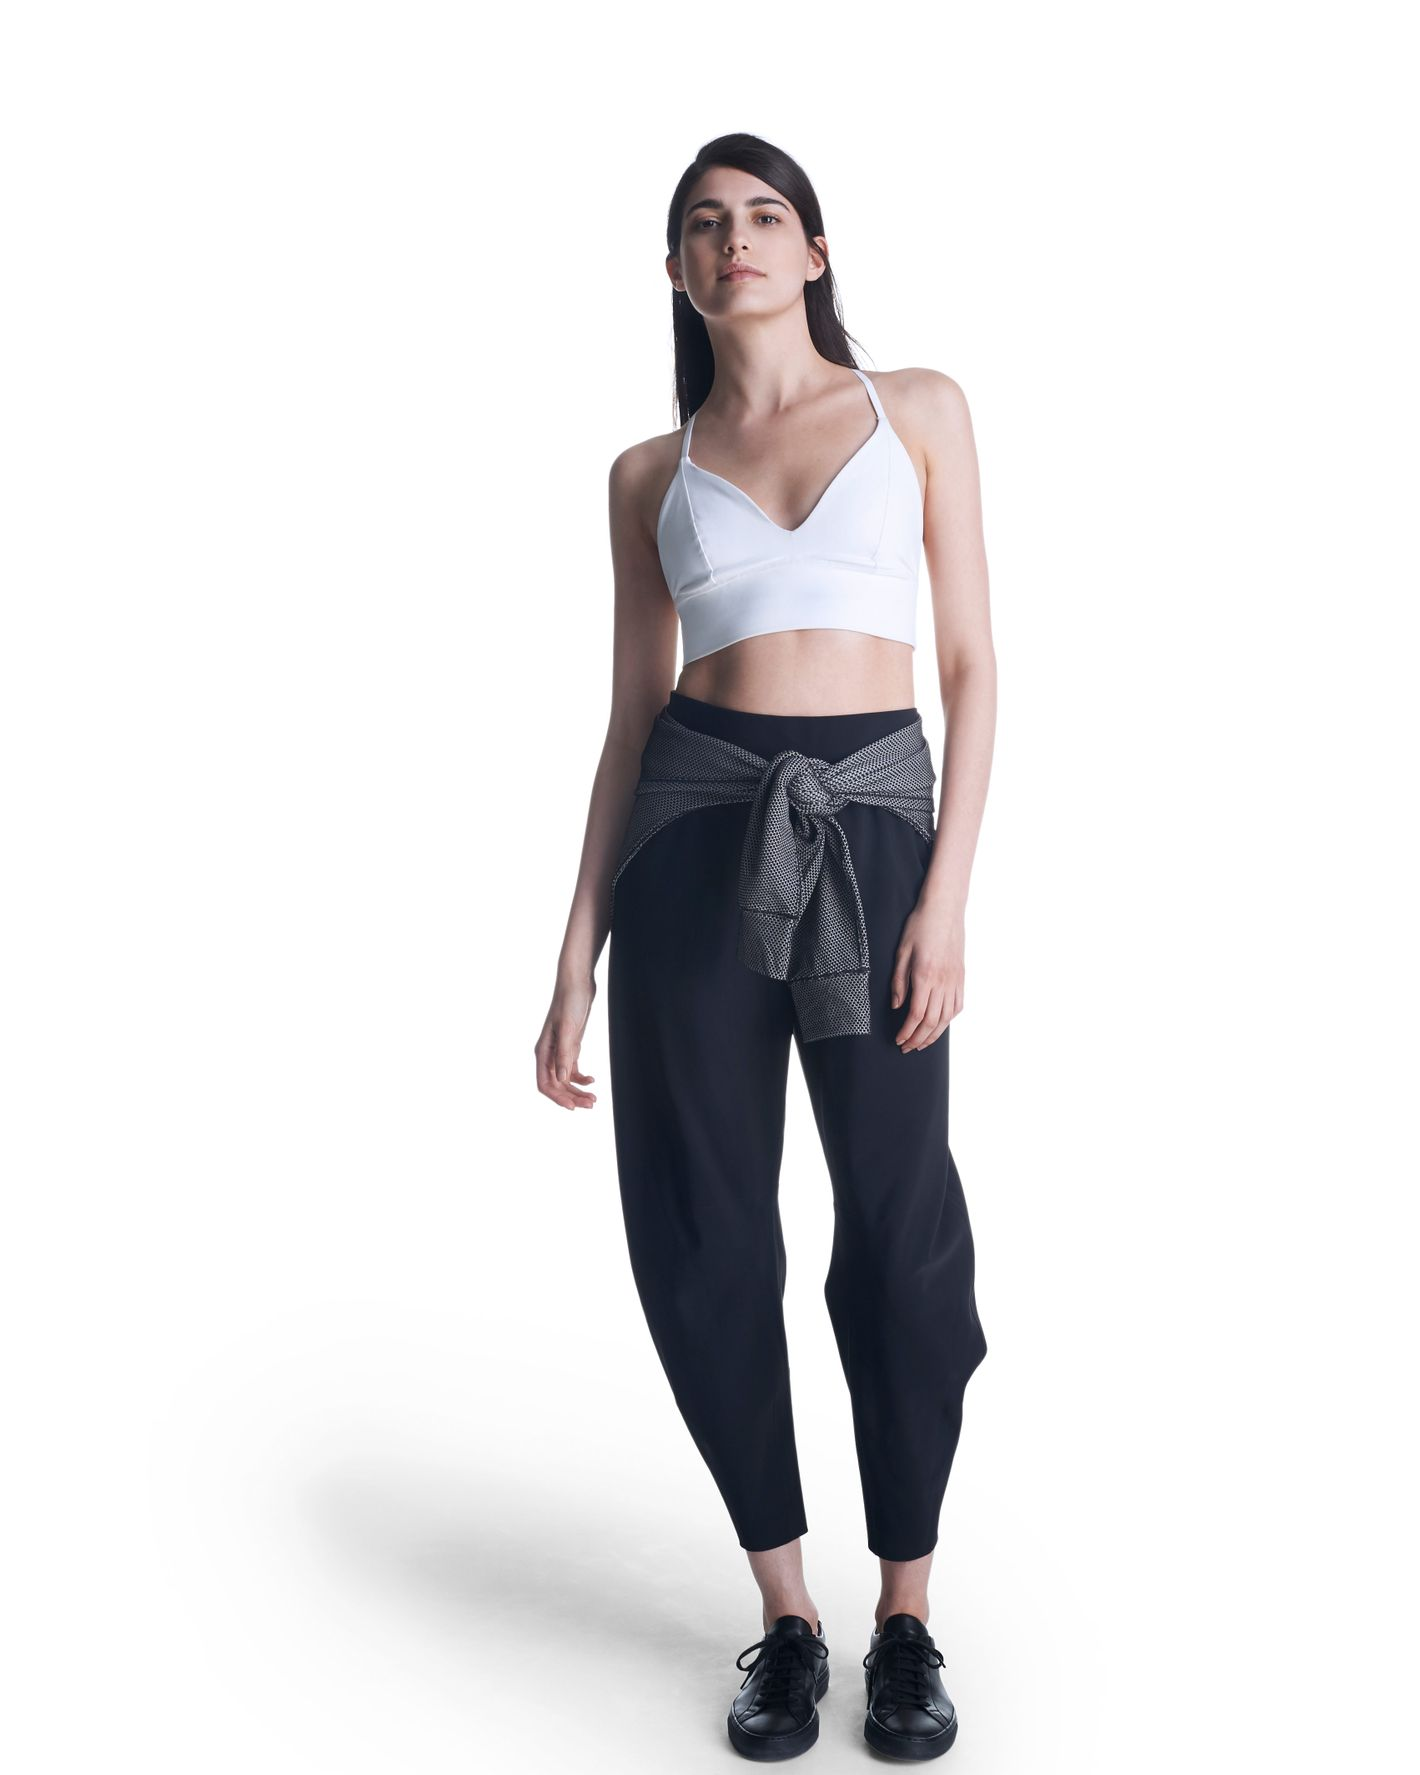 5027c80eedf Lululemon Is Coming for the Rest of Your Closet